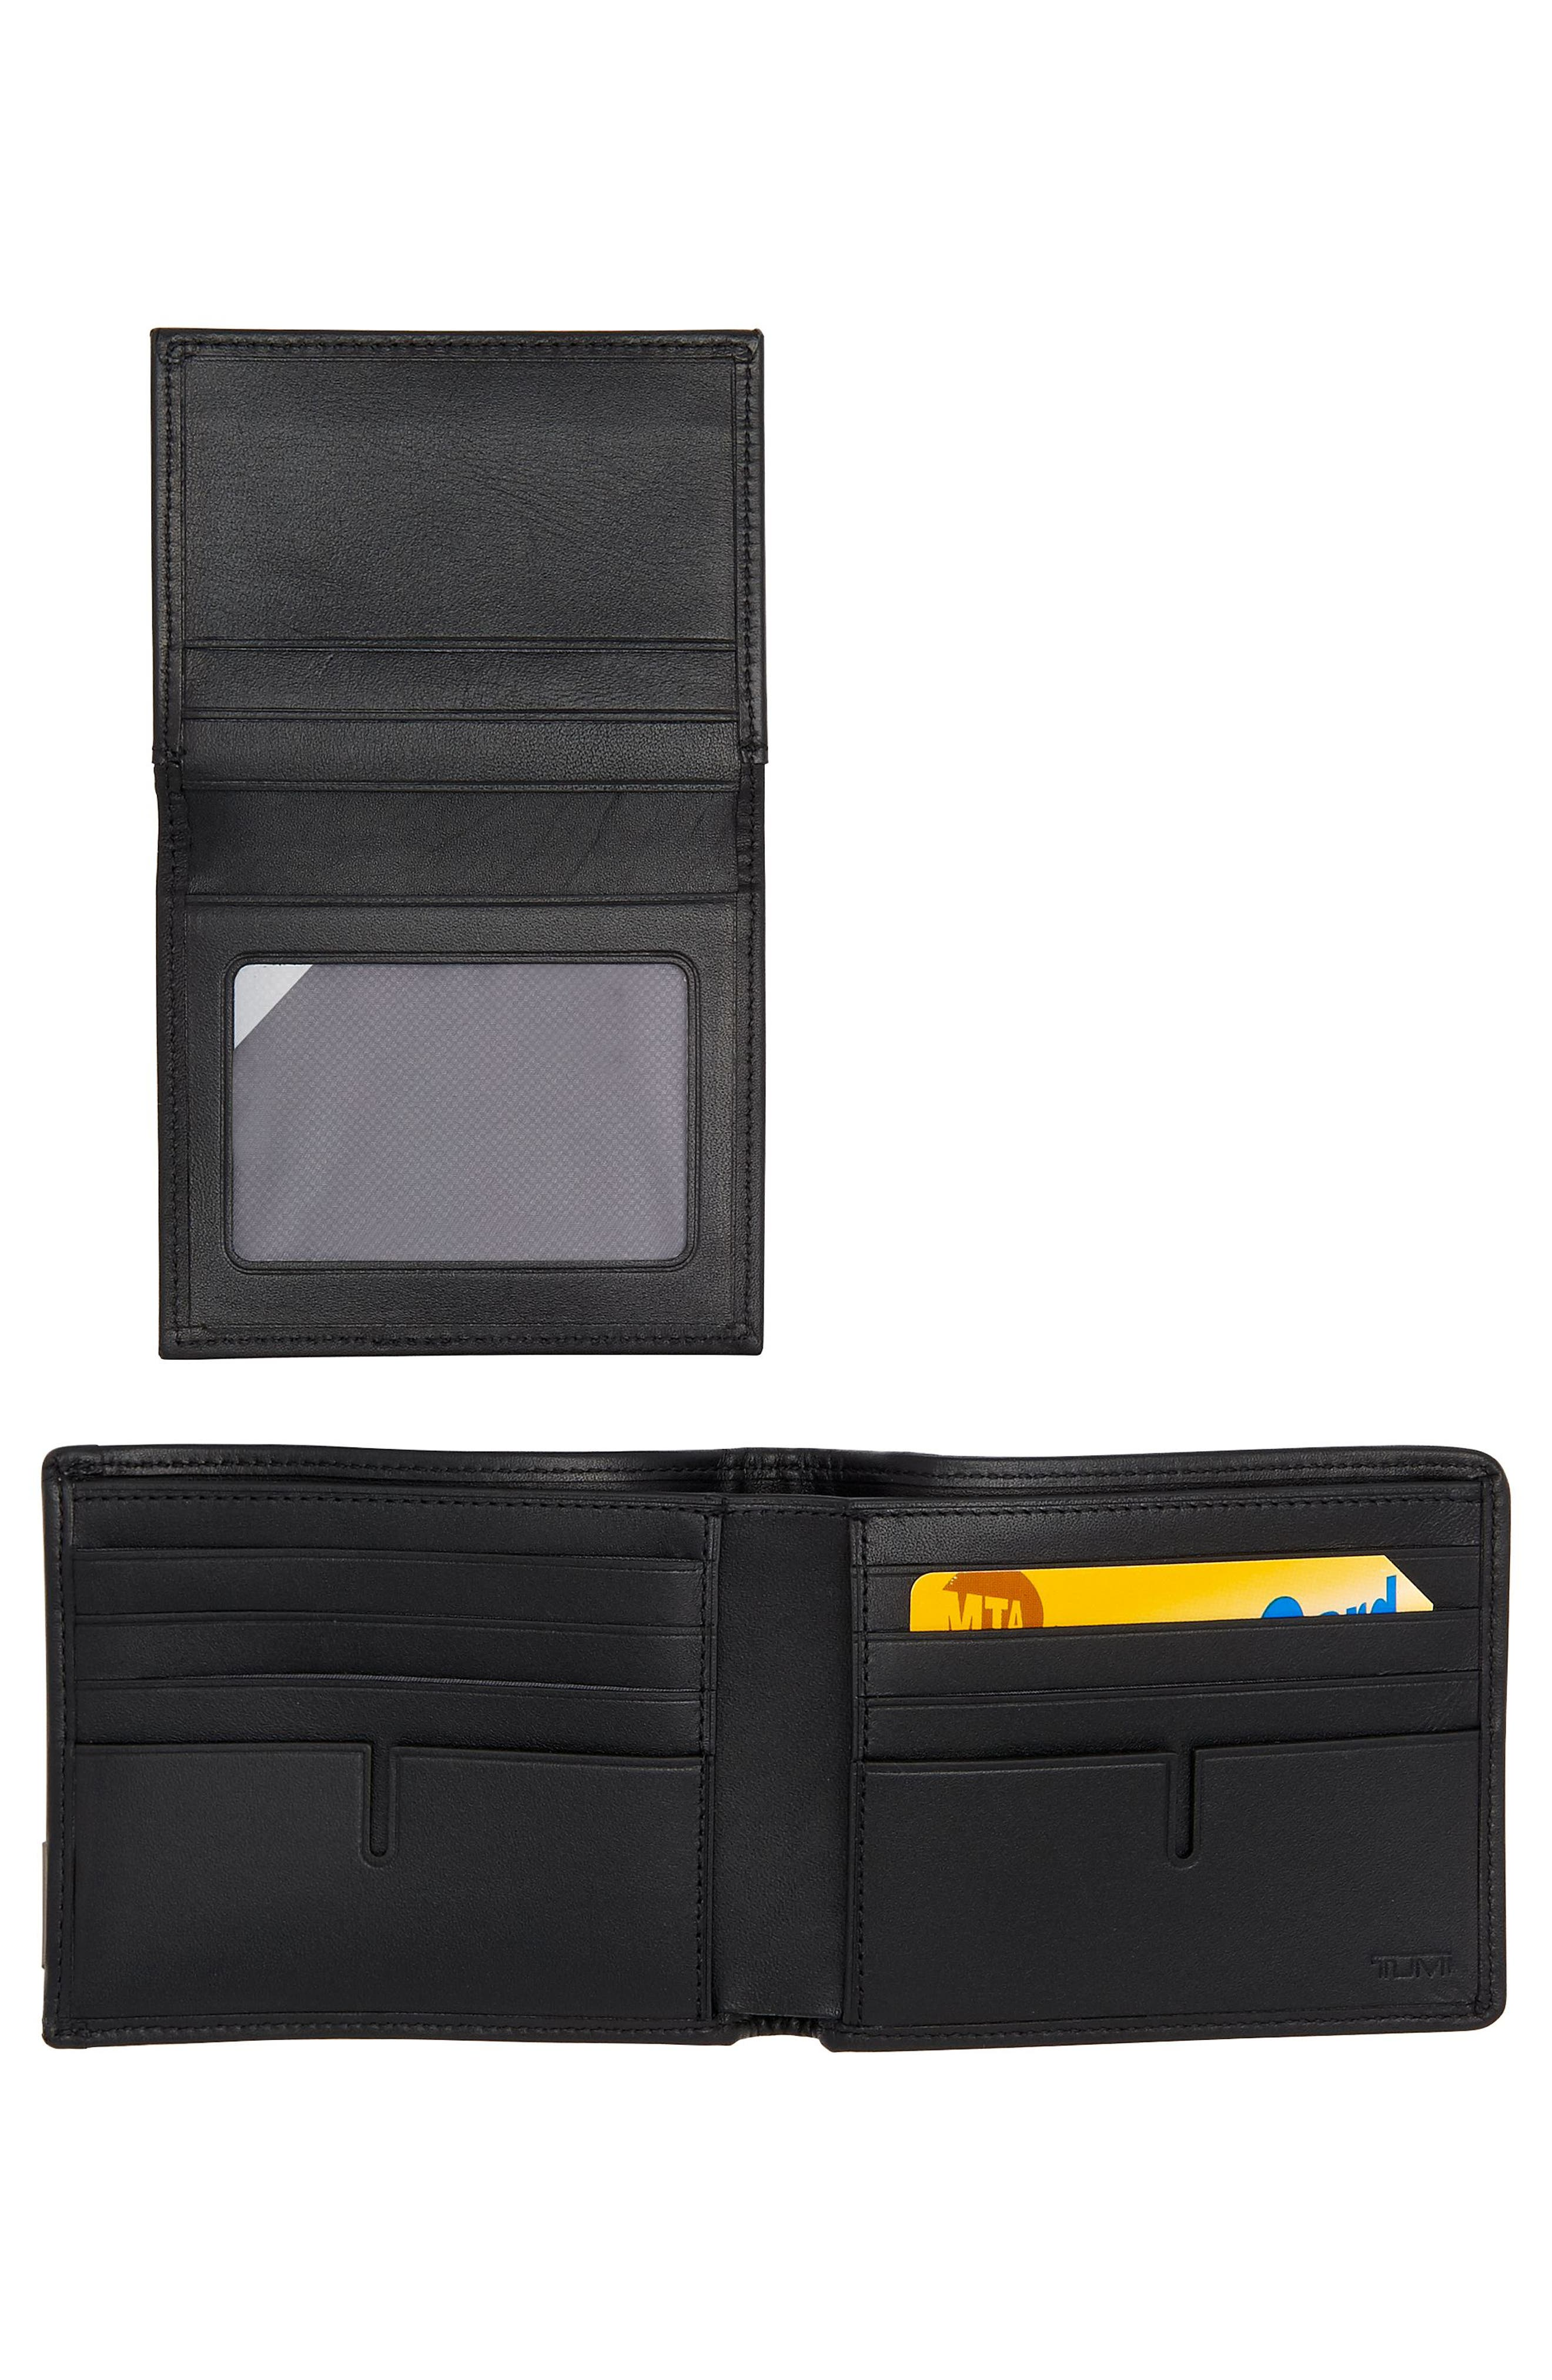 Alpha Global Pass Case Wallet,                             Alternate thumbnail 3, color,                             ANTHRACITE/ BLACK